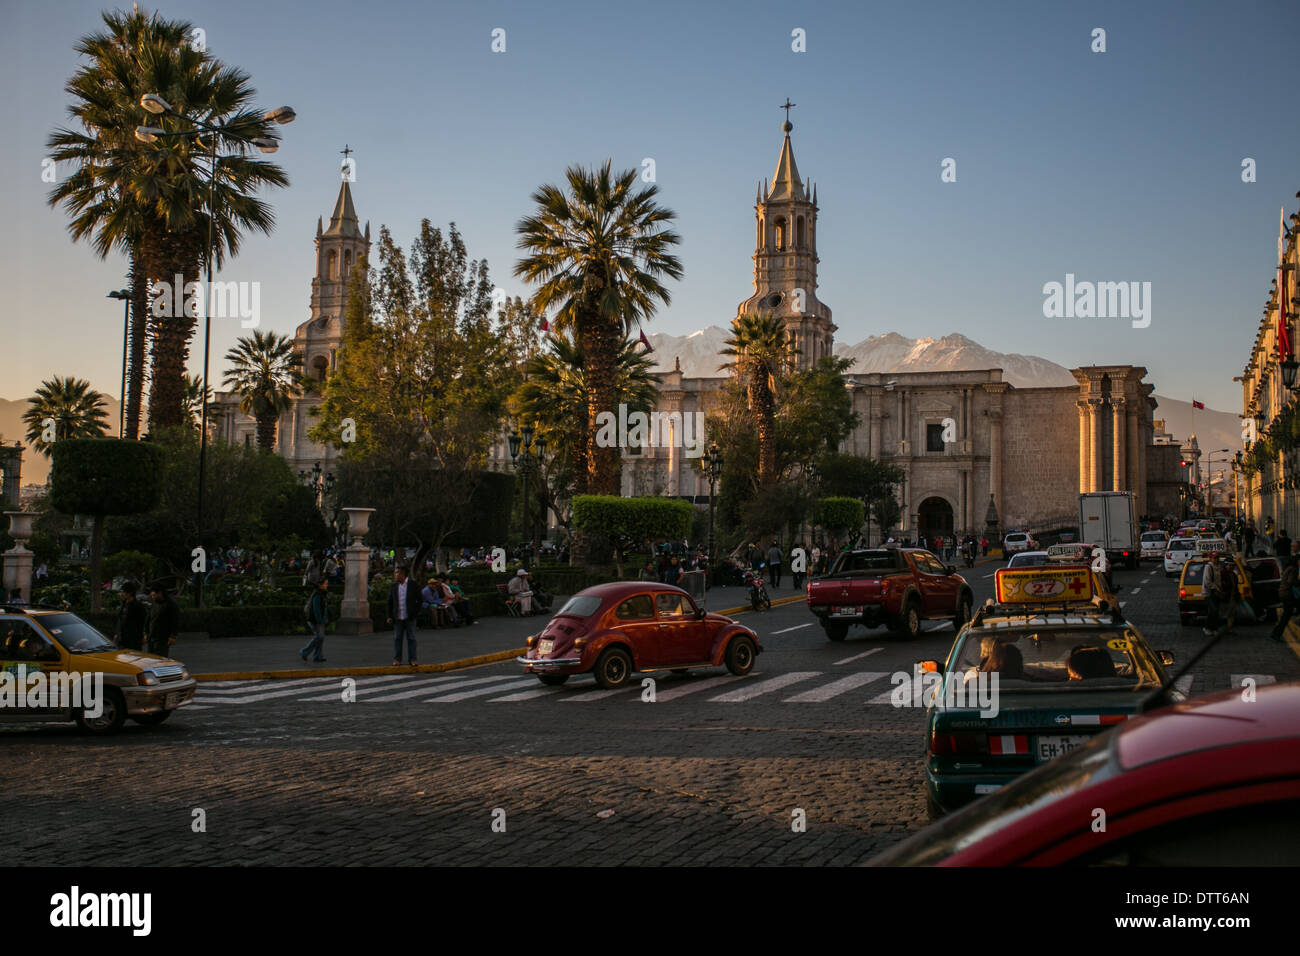 Arequipa - peru - view from hotel with reddish/ orange light from the sunset - cathedral and main square -  car passing by - Stock Image